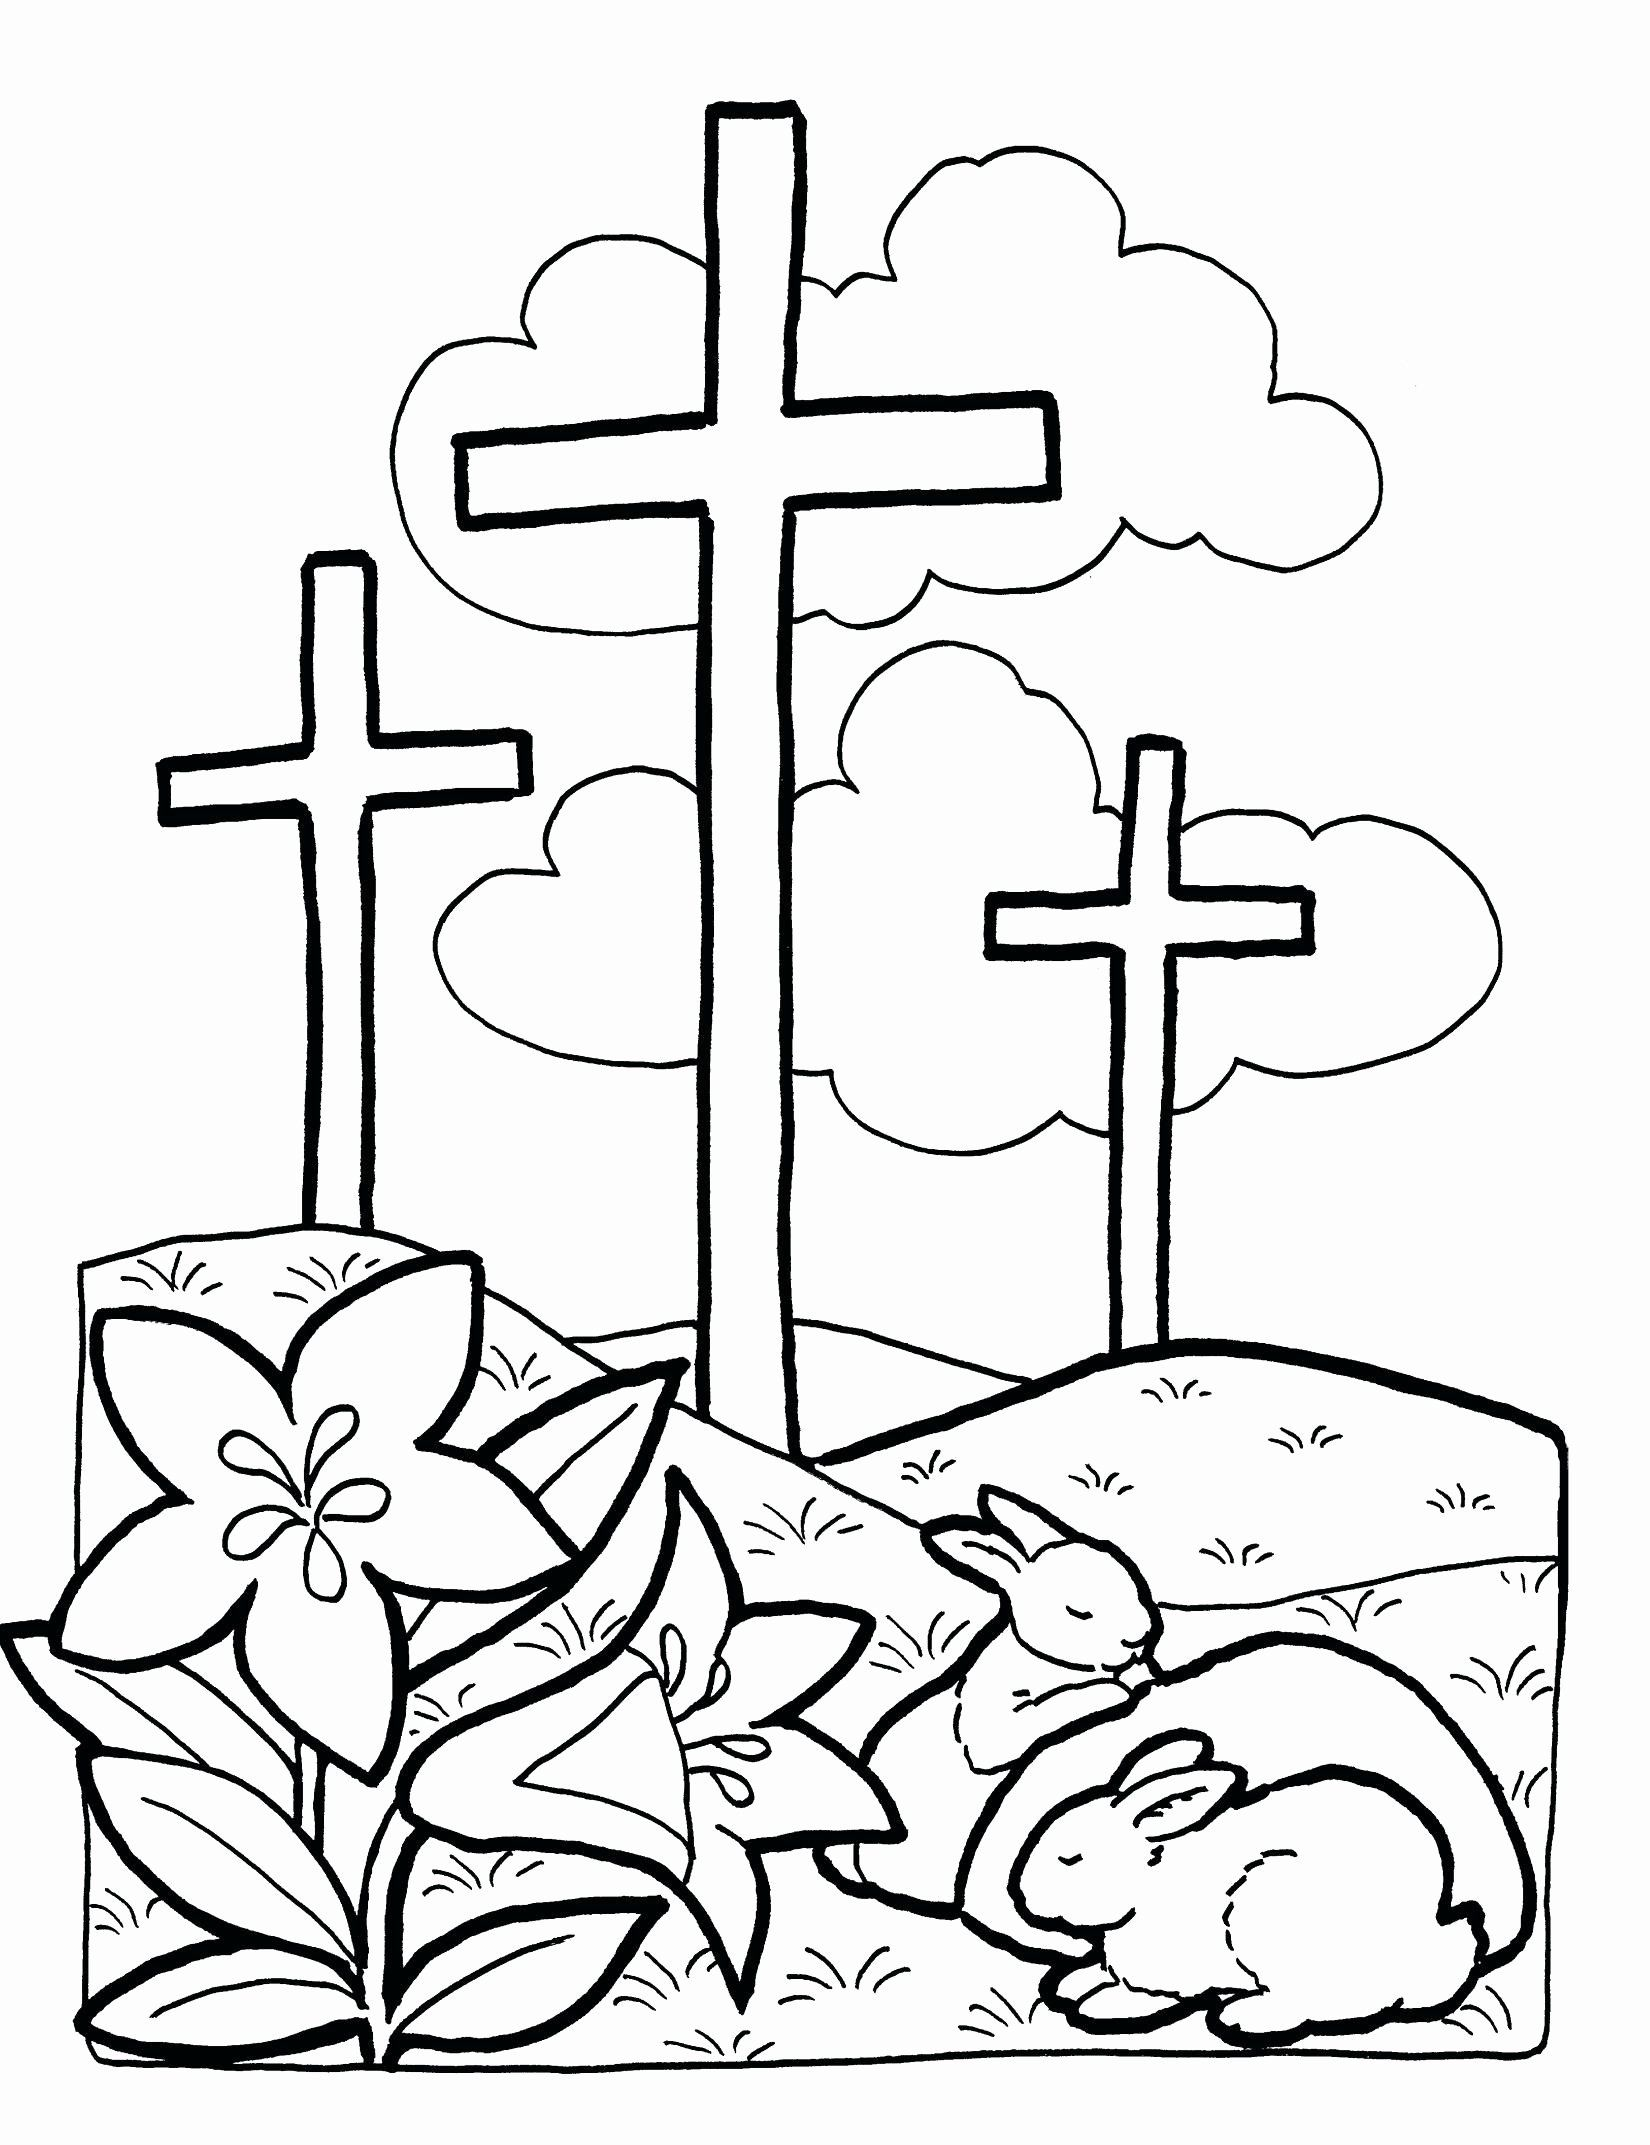 Cross With Flowers Coloring Pages Unique Easter Coloring Pages